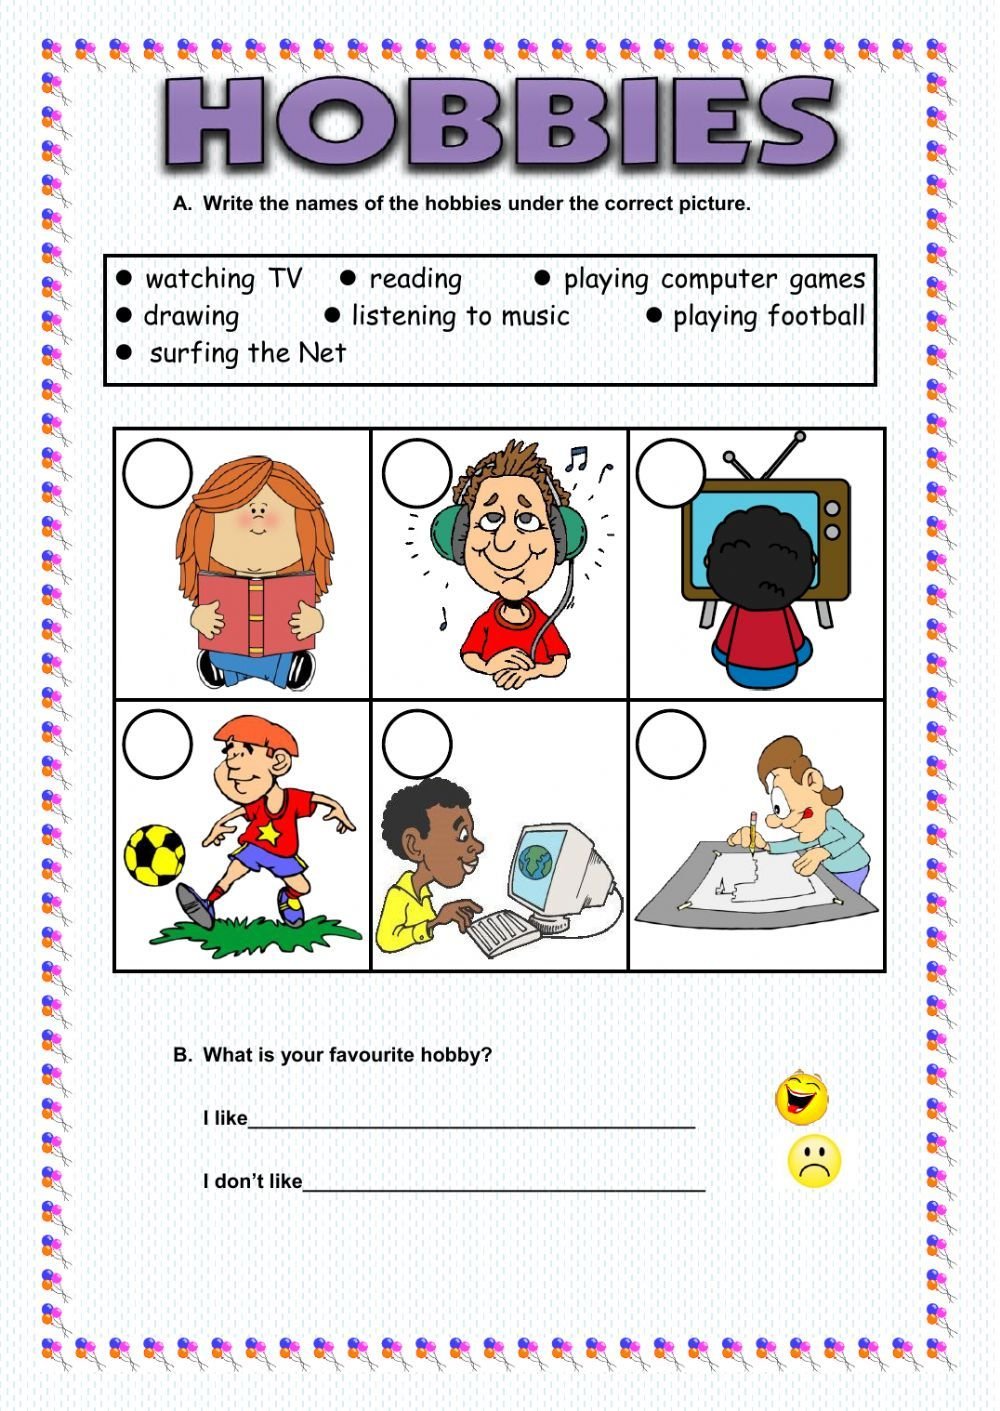 Hobbies interactive and downloadable worksheet. You can do